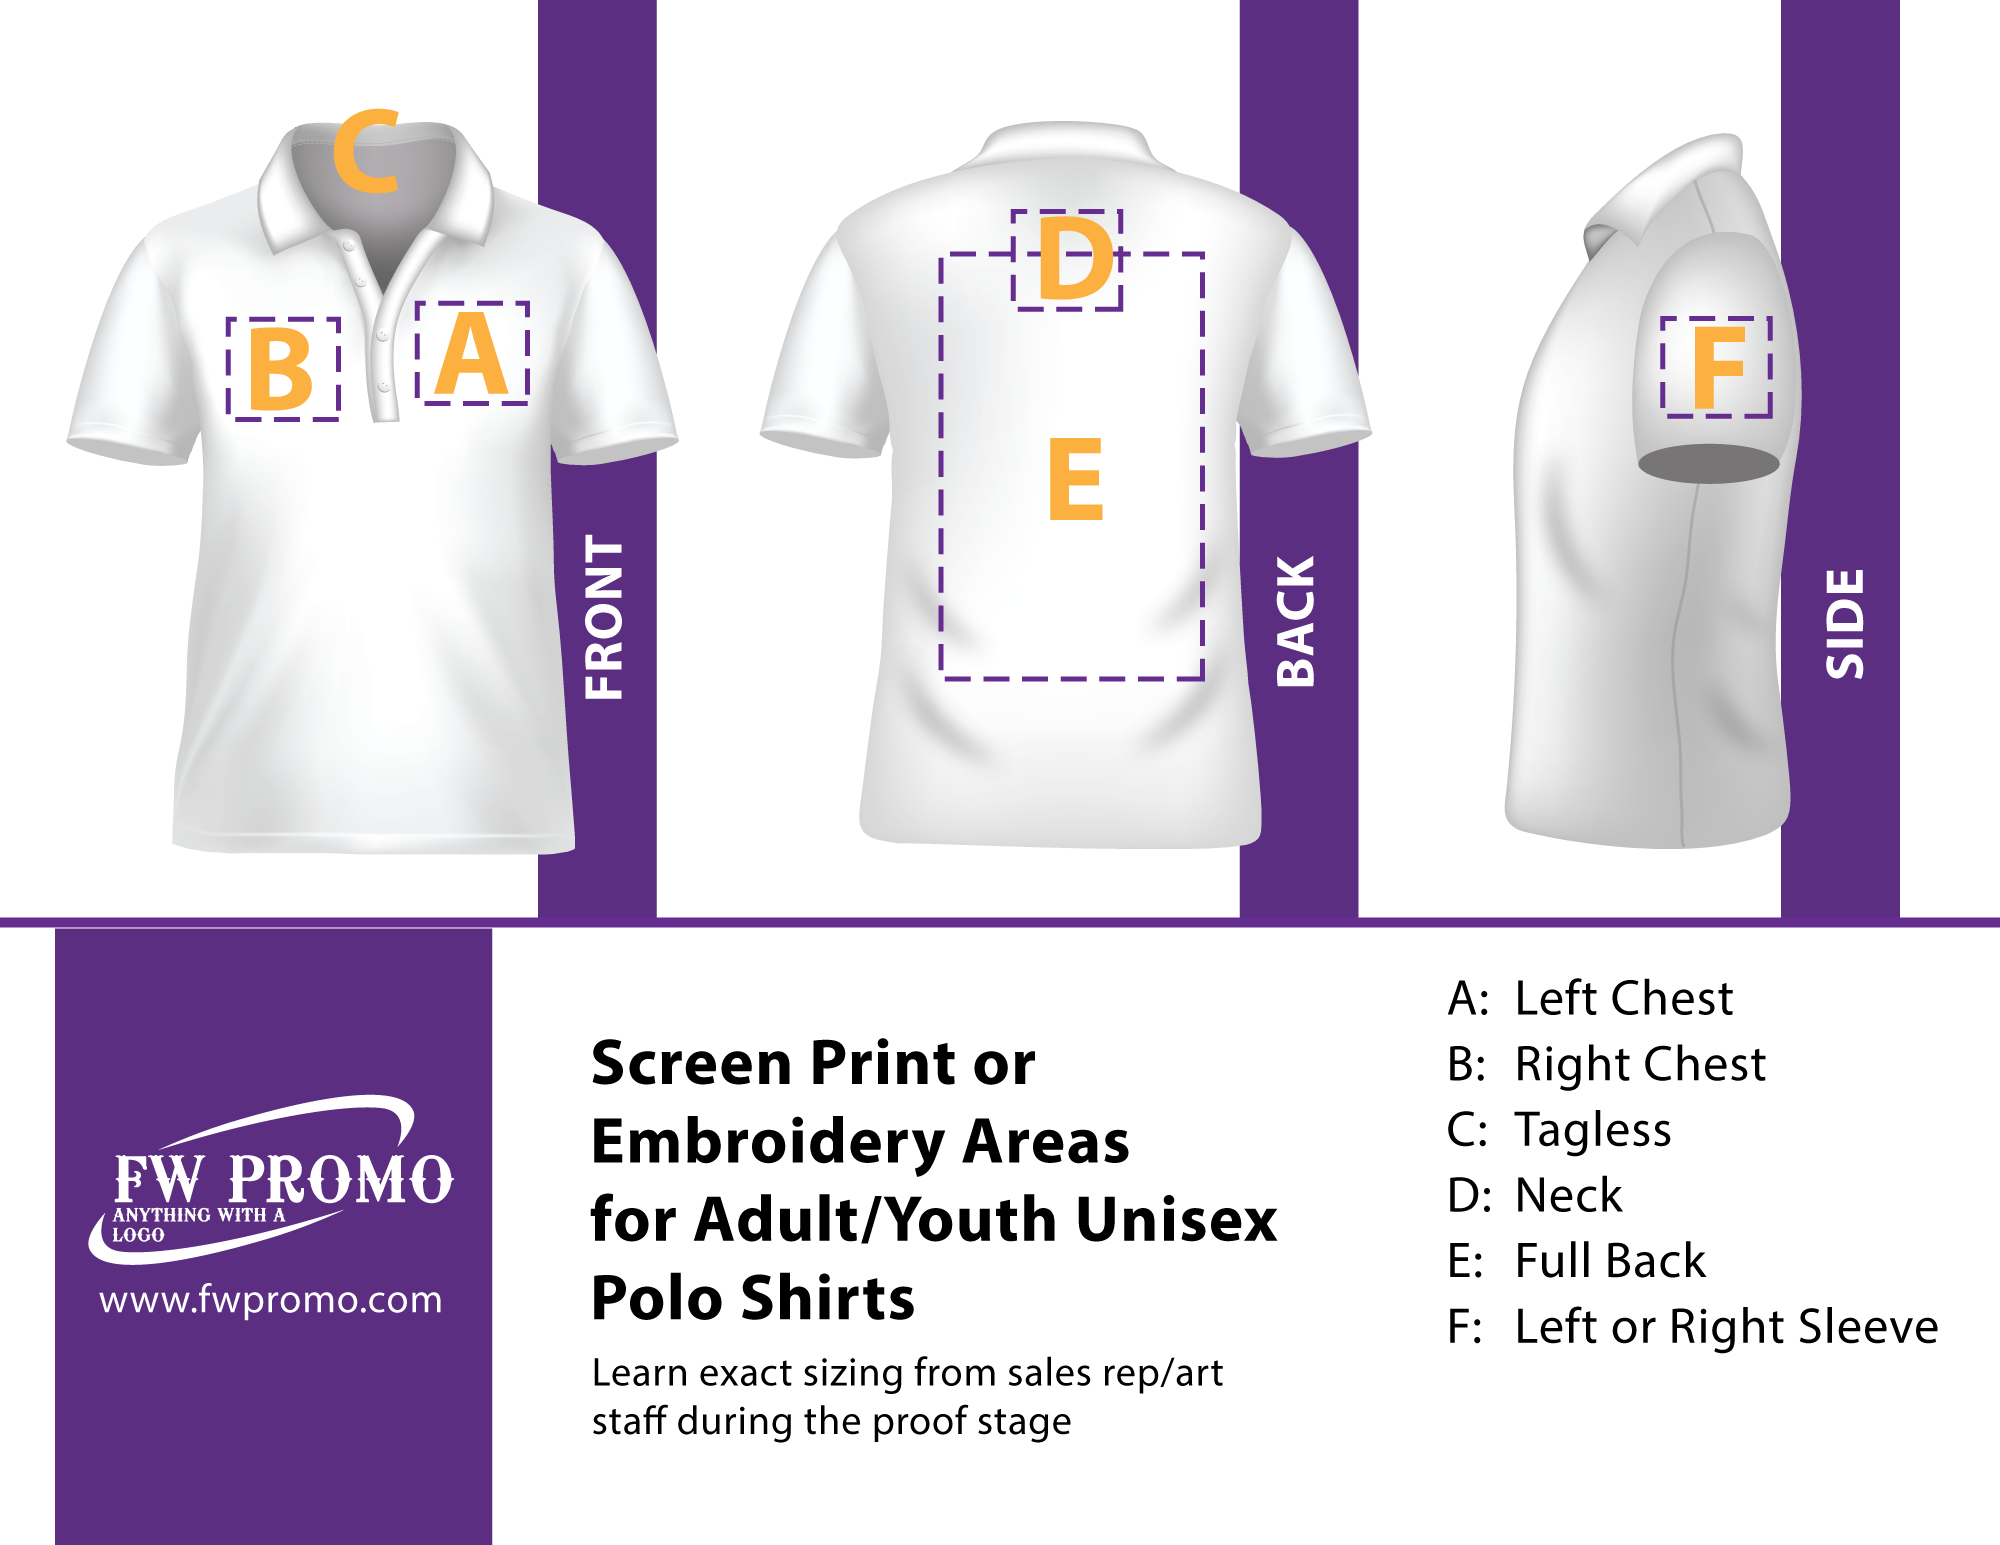 Template Areas for Screen Printing & Embroidery | FW Promo